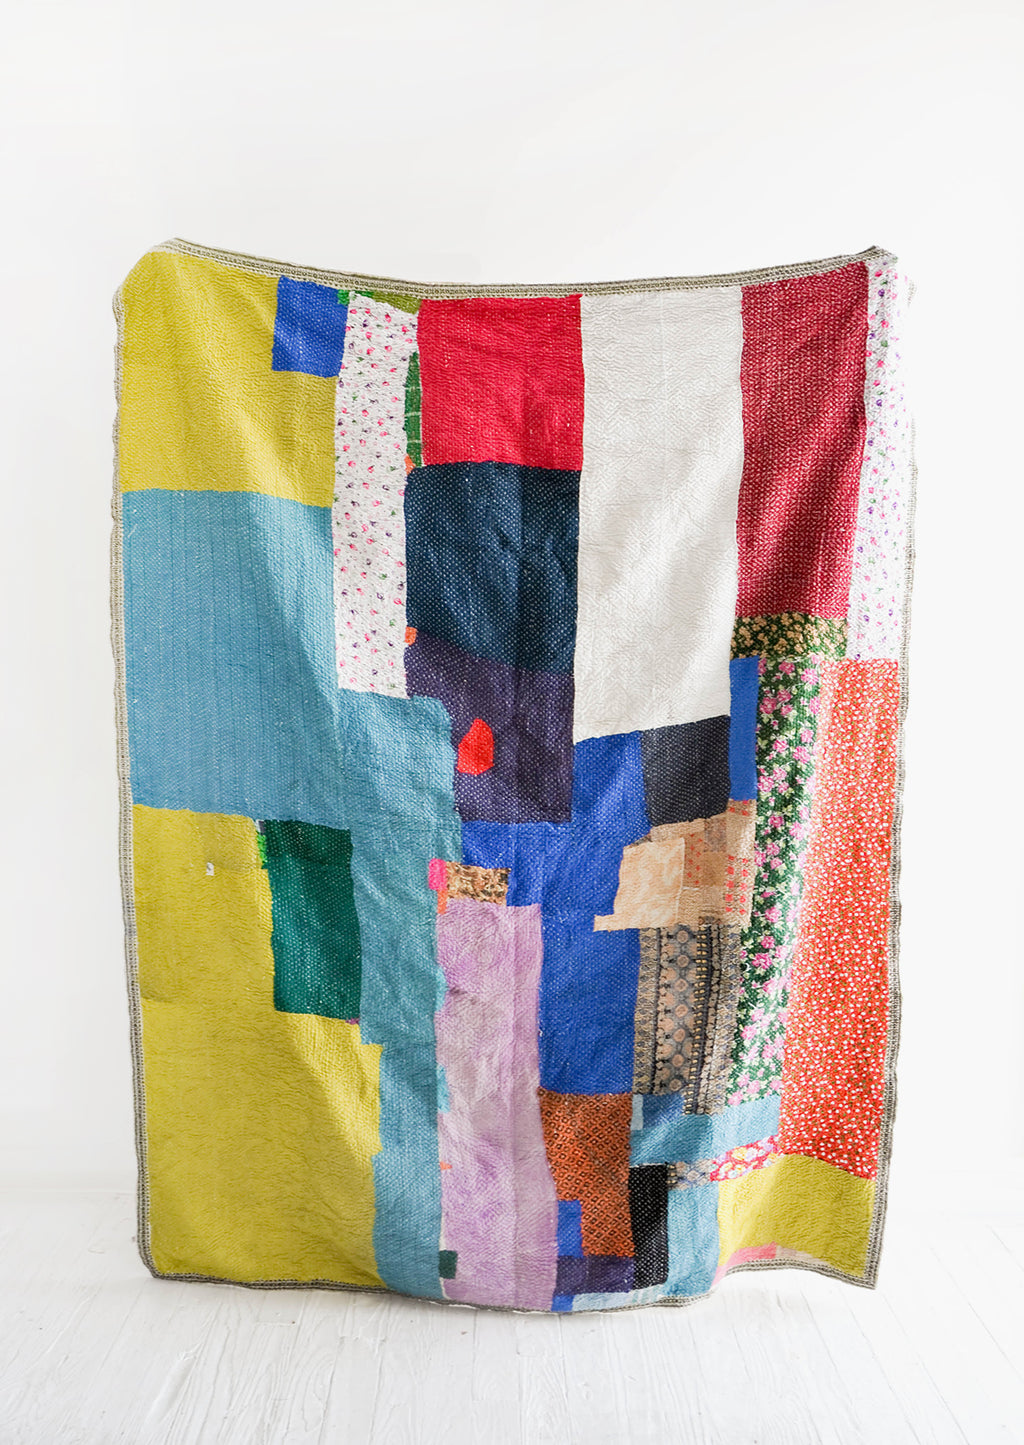 1: Vintage patchwork quilt in a colorful mix of fabrics. All different shades of green, blue, red & more.